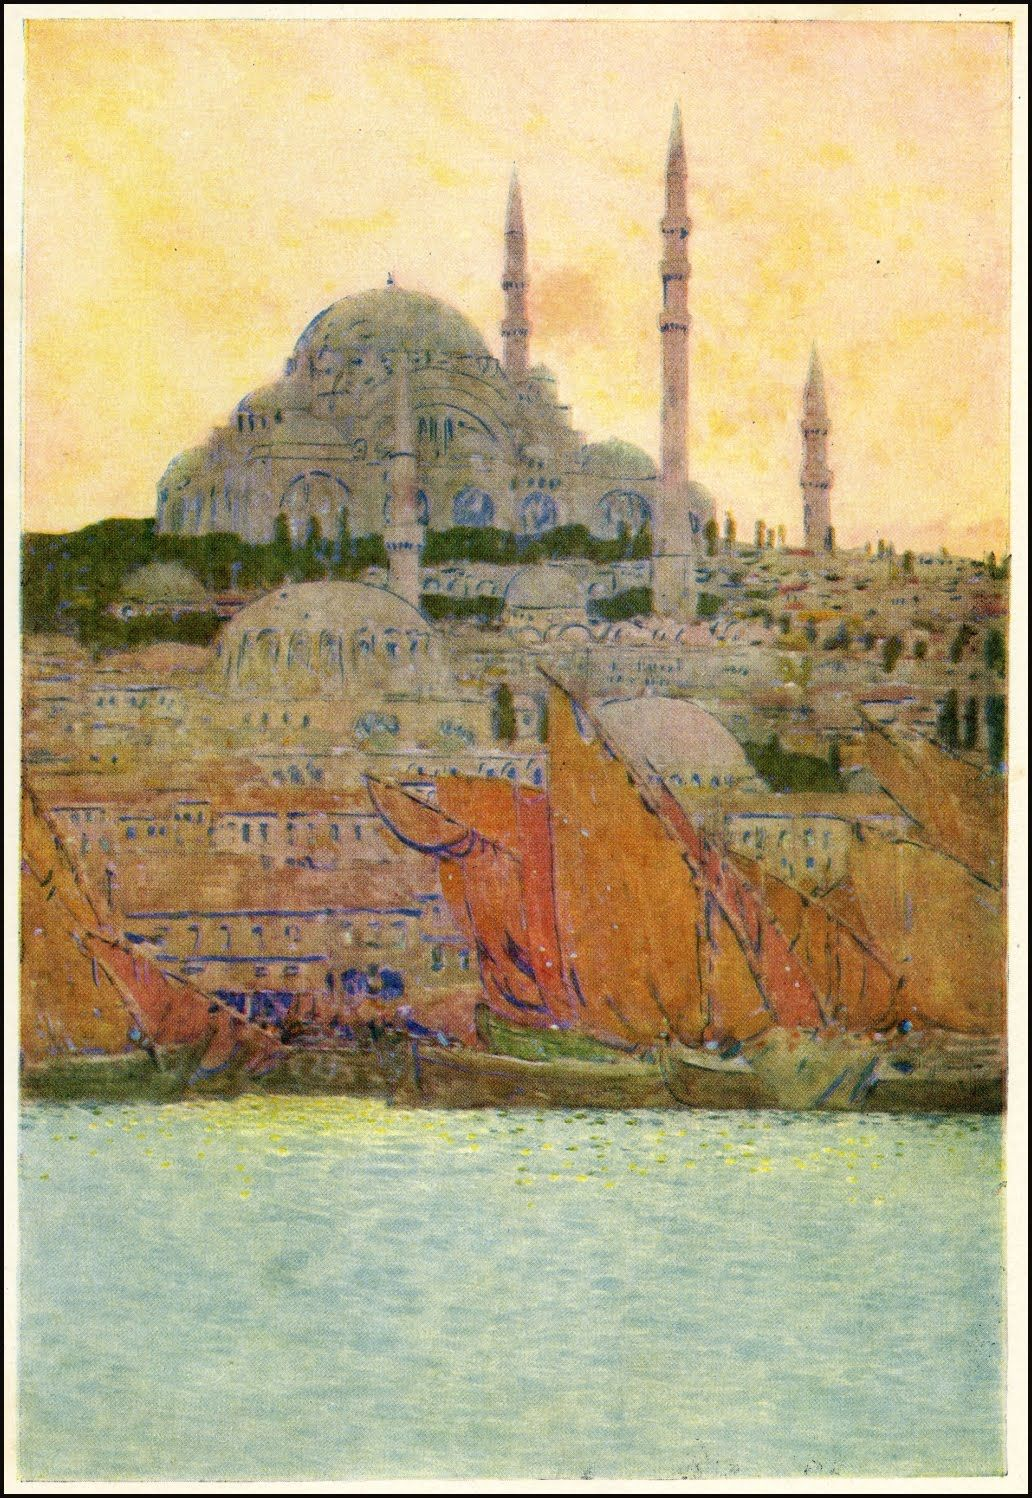 Robert Hichens, The Near East : Dalmatia, Greece and Constantinople, illustrated by Jules Guerin, 1913